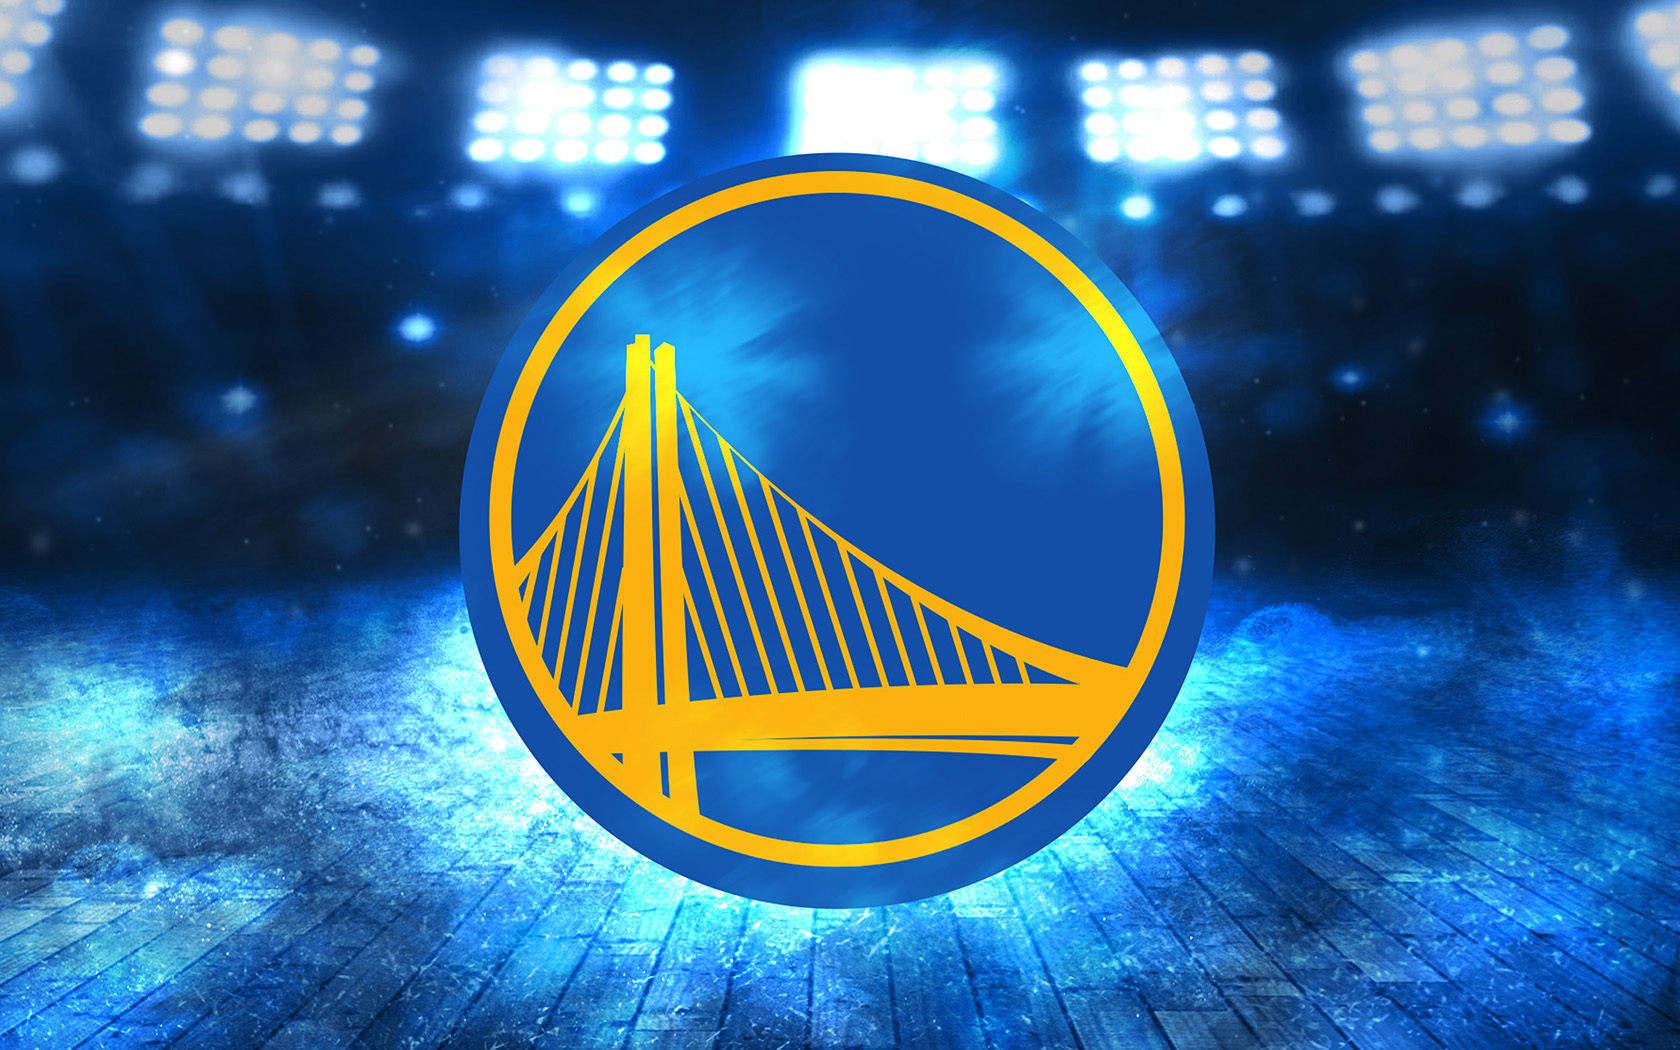 Papers Co Ar Golden State Warriors Logo Nba Sports Art Illustration Wallpaper moreover Fractals X Radial K furthermore Smoke Rainbow Liquid  position further Papers Co Mf Morning Calm Beach Glow Ocean View X K Wallpaper furthermore Mass Effect Andromeda K X. on abstract rainbow